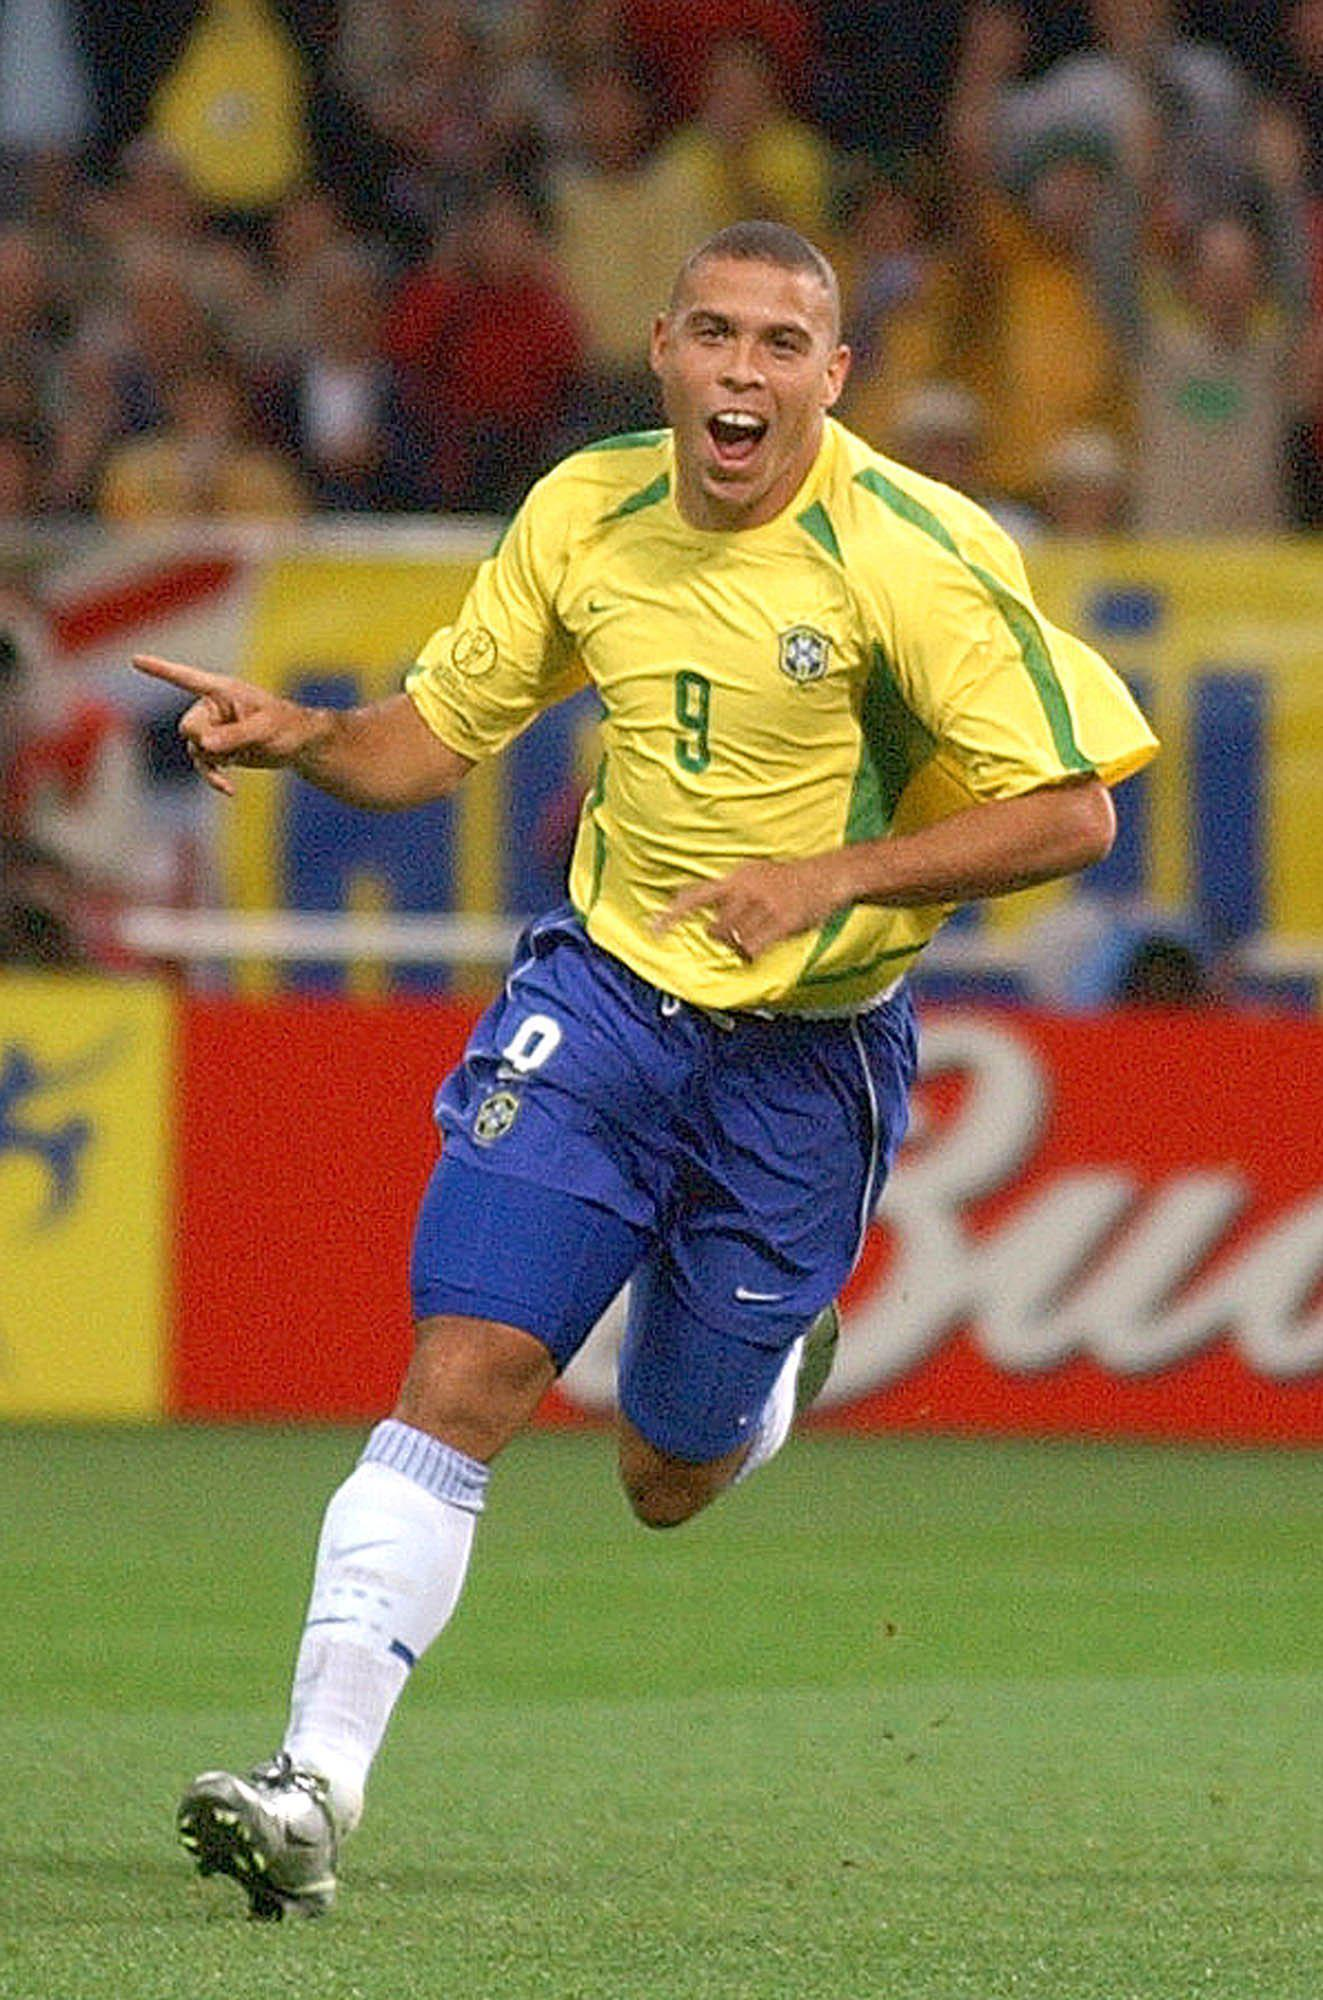 Ronaldo was one of the most gifted footballers to grace the game